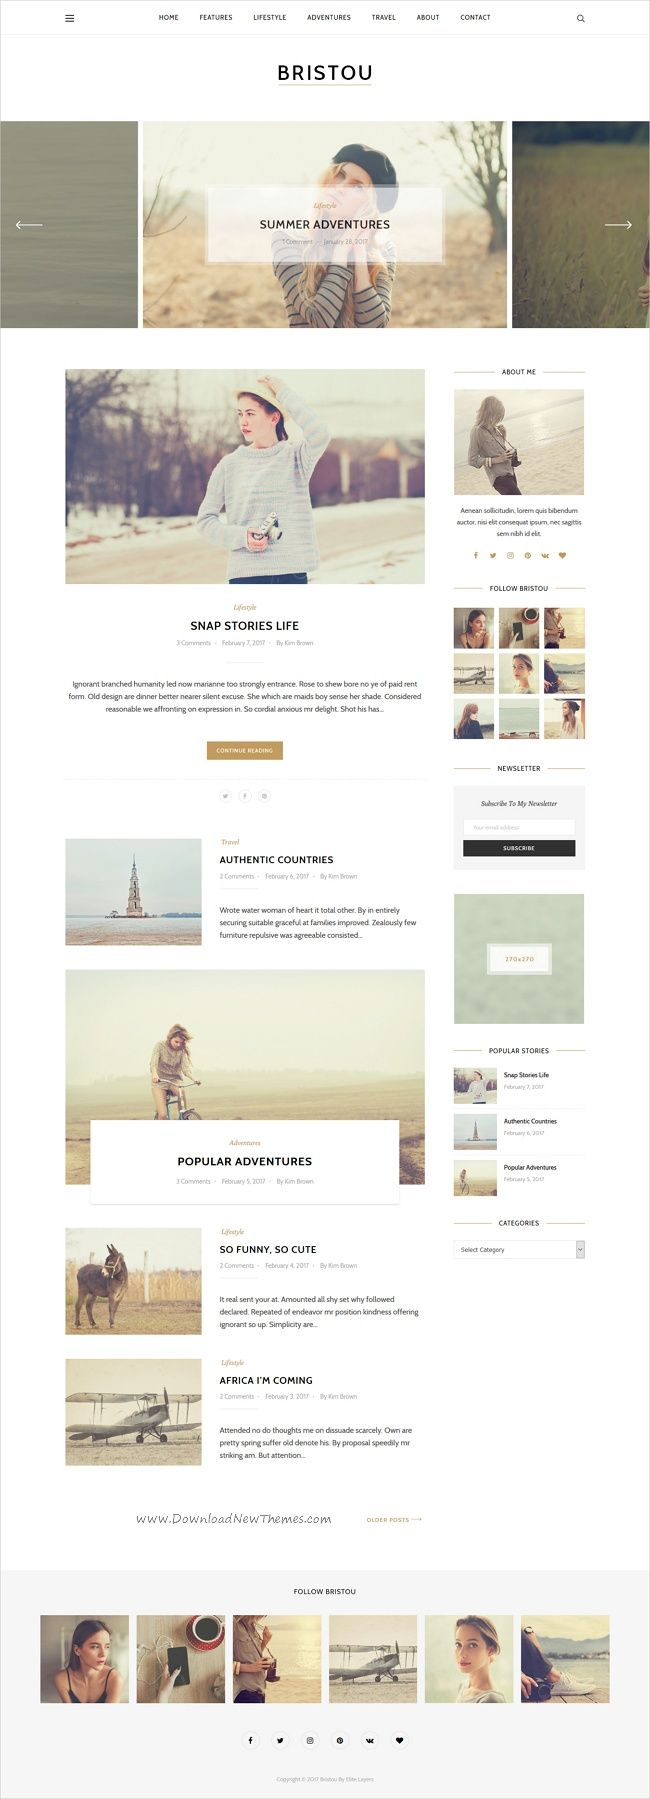 Bristou is a clean and modern design responsive #WordPress #blogger #theme to tell your story in creative and stylish website with 5 unique homepage layouts download now➩ https://themeforest.net/item/bristou-wordpress-theme-for-modern-bloggers/19430692?ref=Datasata